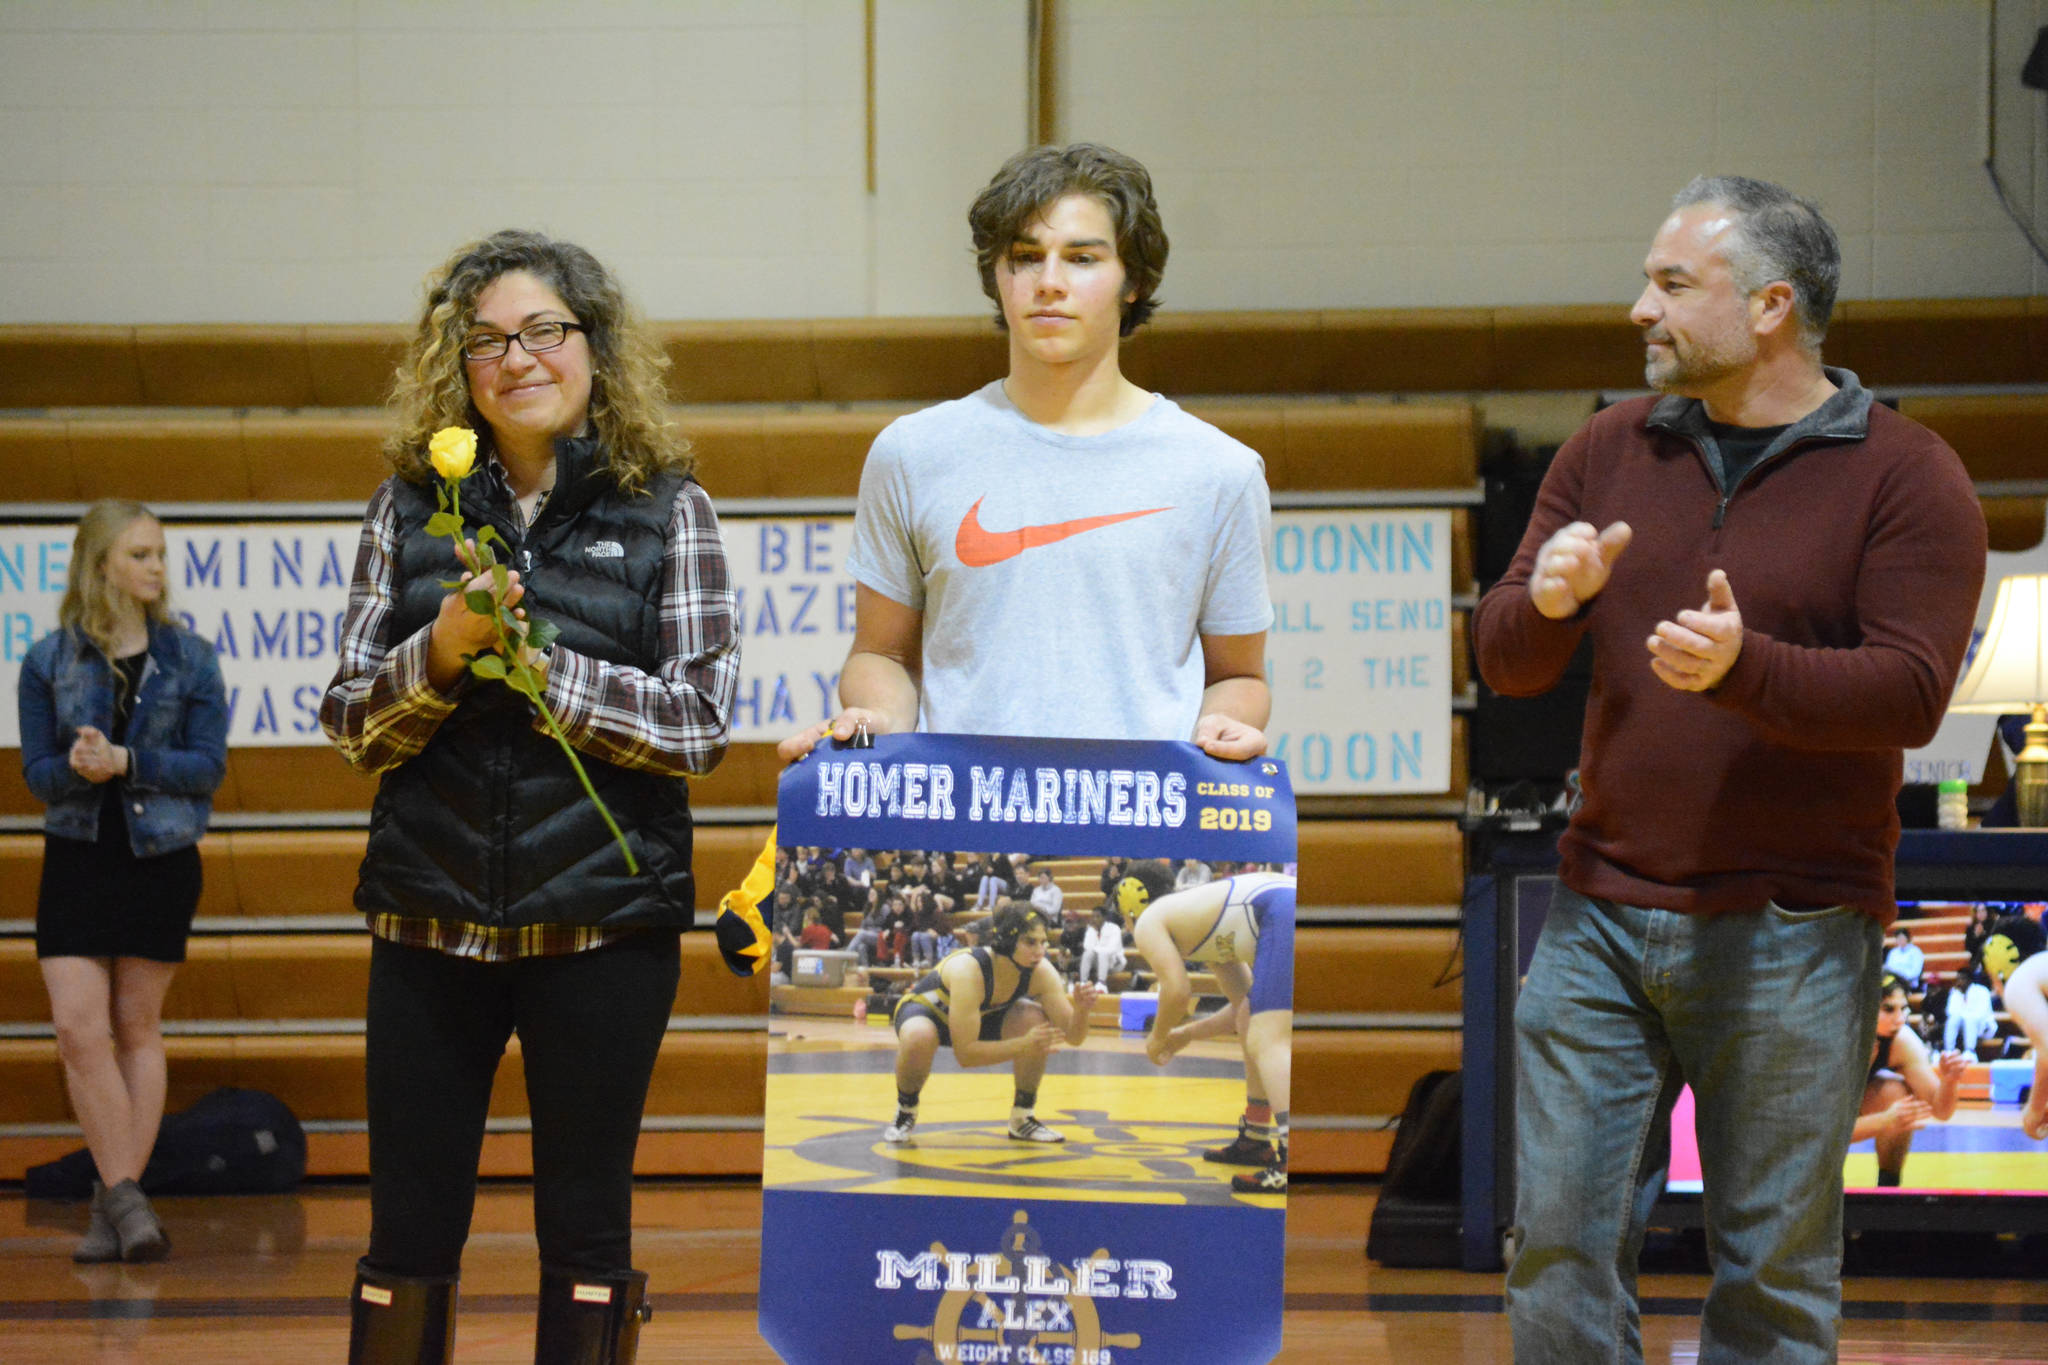 Alex Miller, center, holds a banner recognizing him at Senior Night, the Homer-Kenai dual wrestling meet held Nov. 21, 2018, in the Homer High School Alice Witte Gym, Homer, Alaska. His mother, Loreta Miller, left, and father, Brian Miller, clap for their son. (Photo by Michael Armstrong/Homer News)